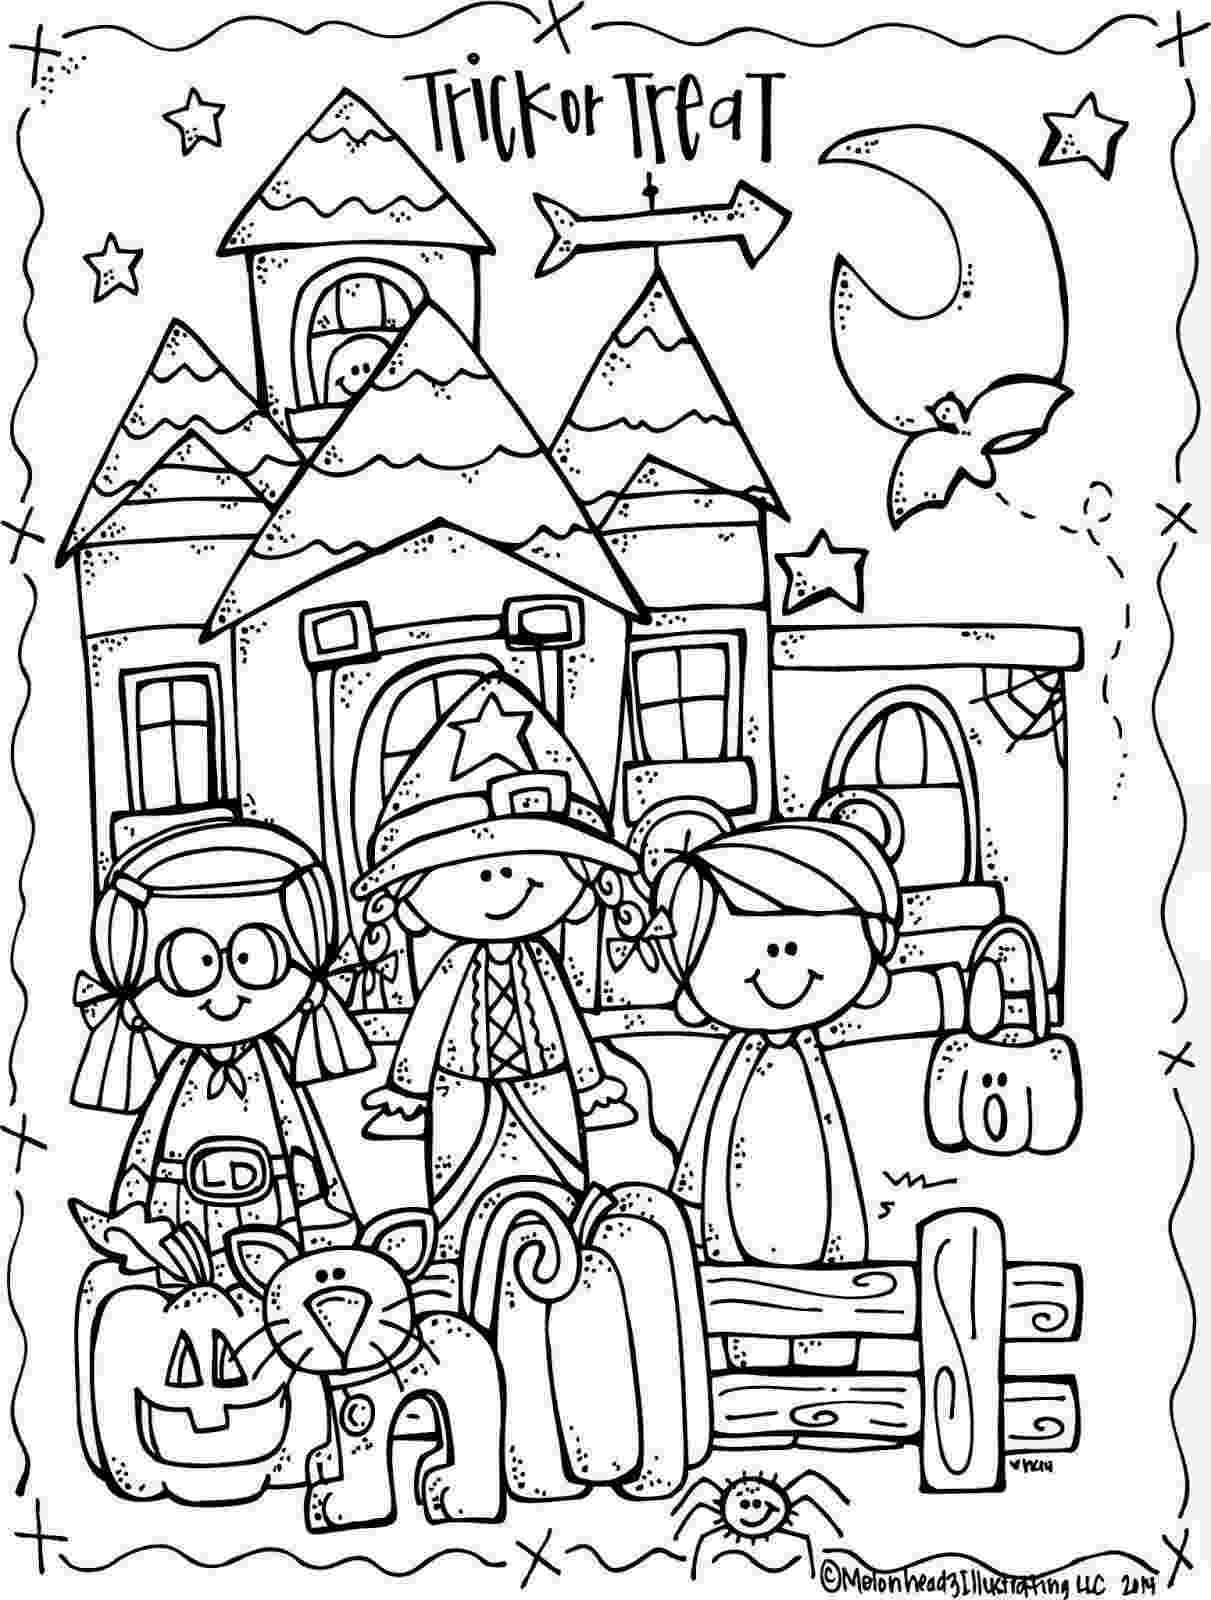 coloring halloween pages free halloween coloring pages for kids or for the kid in you halloween pages coloring